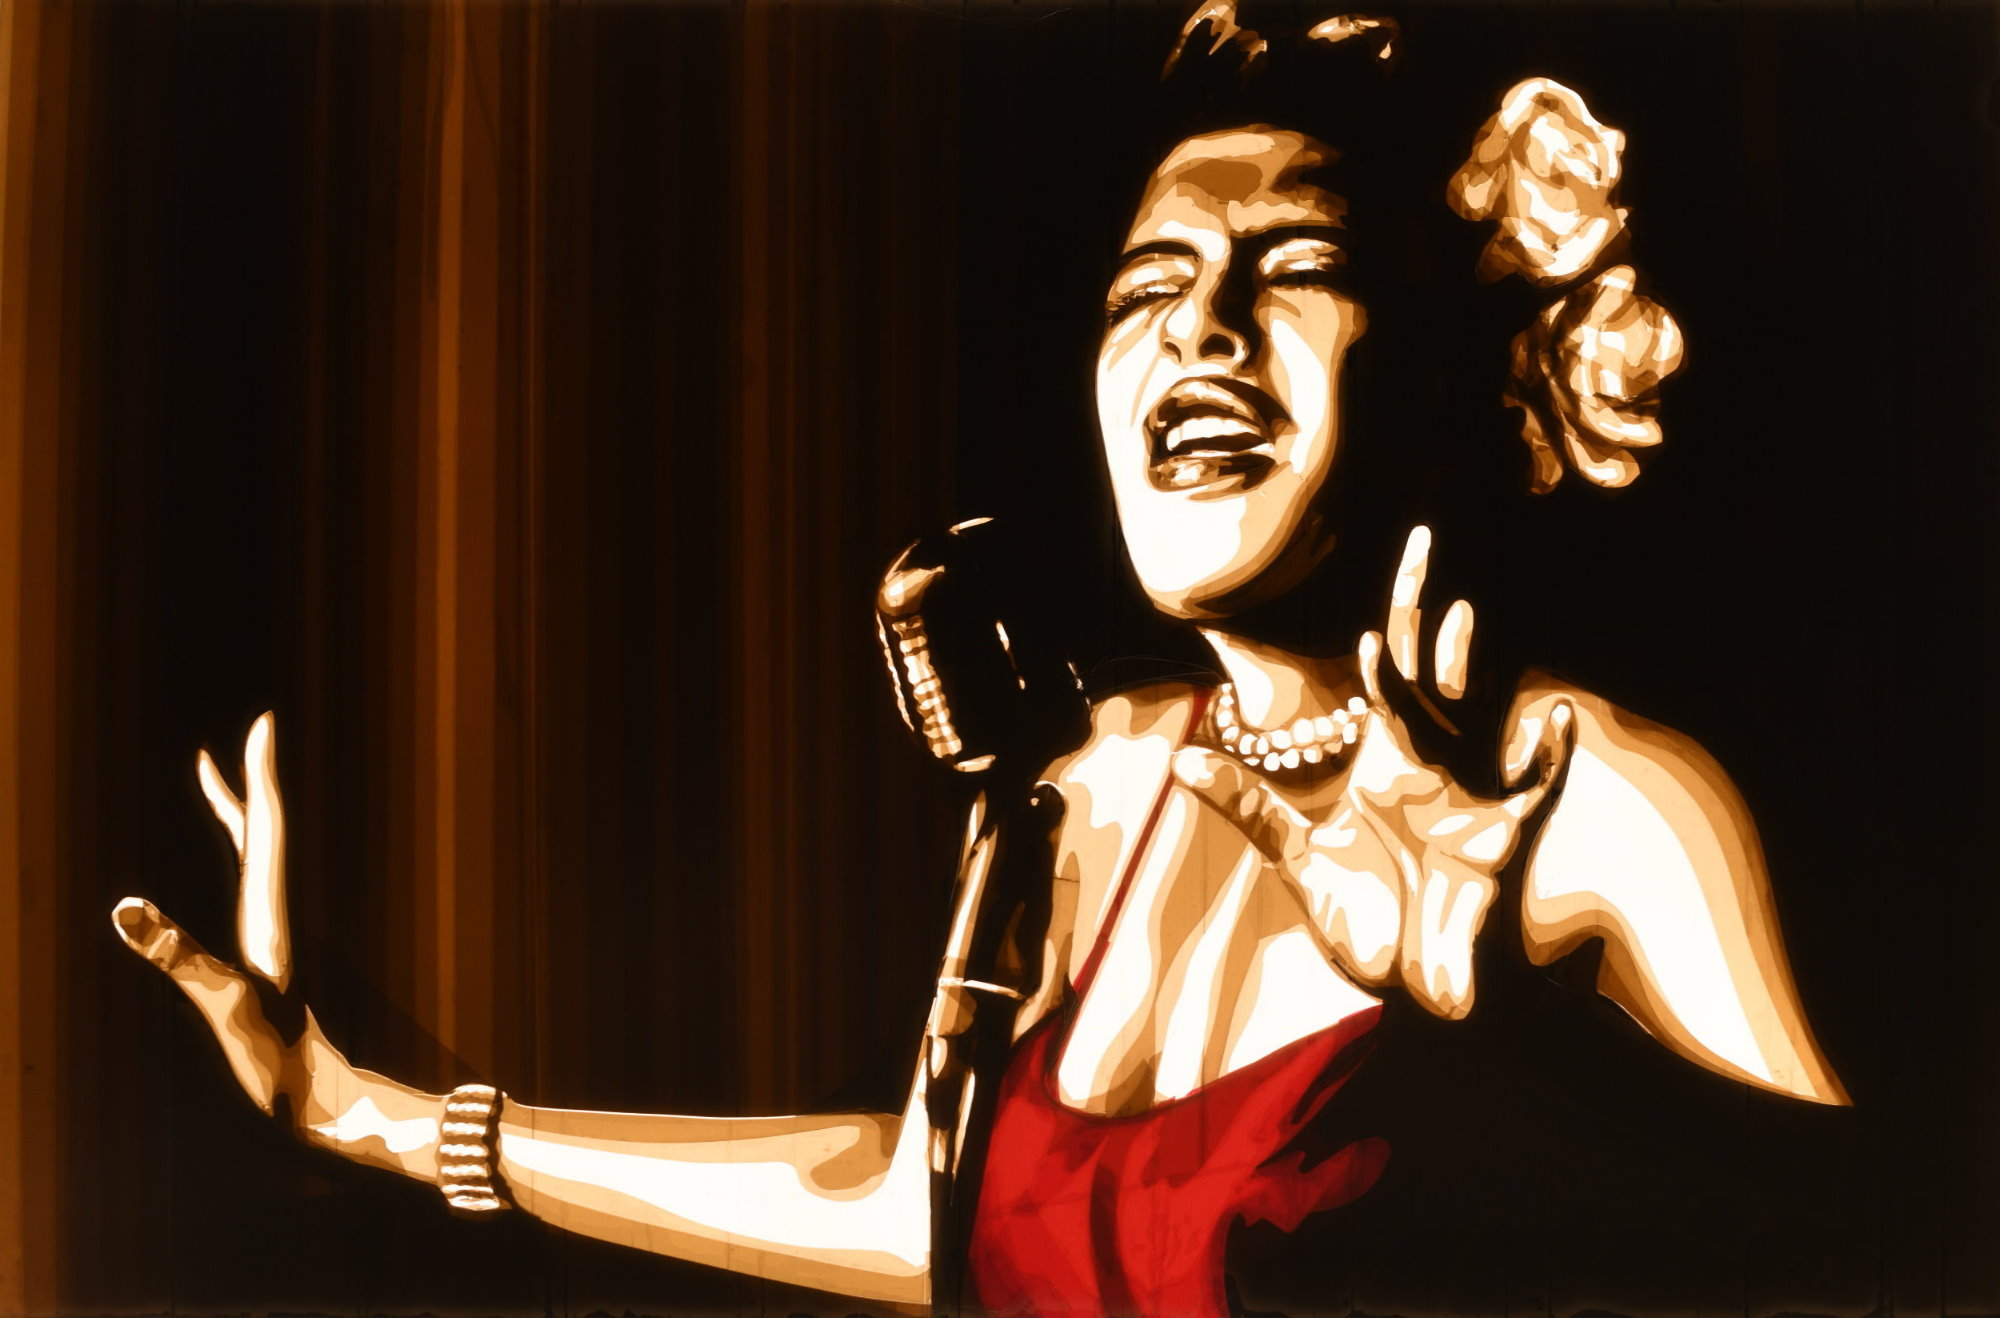 This artwork made of brown packing tape depicts Billie Holiday, the famous jazz and blues singer